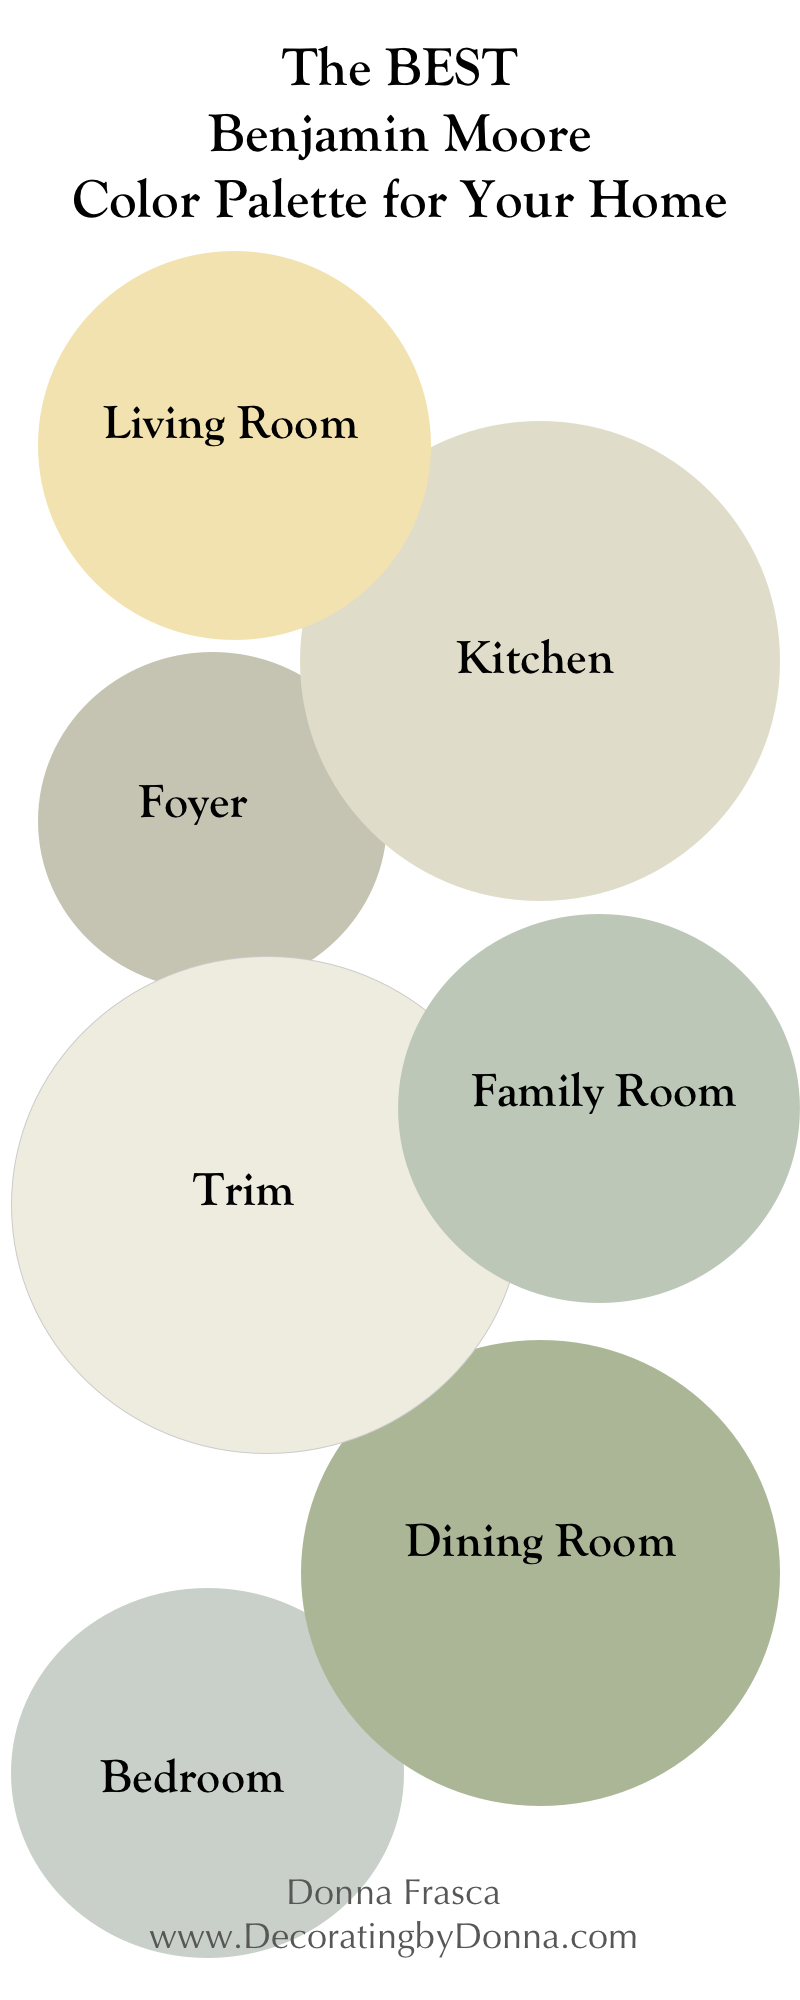 The Best Benjamin Moore Coastal Color Palette For Your Home By Color  Expert Donna Frasca